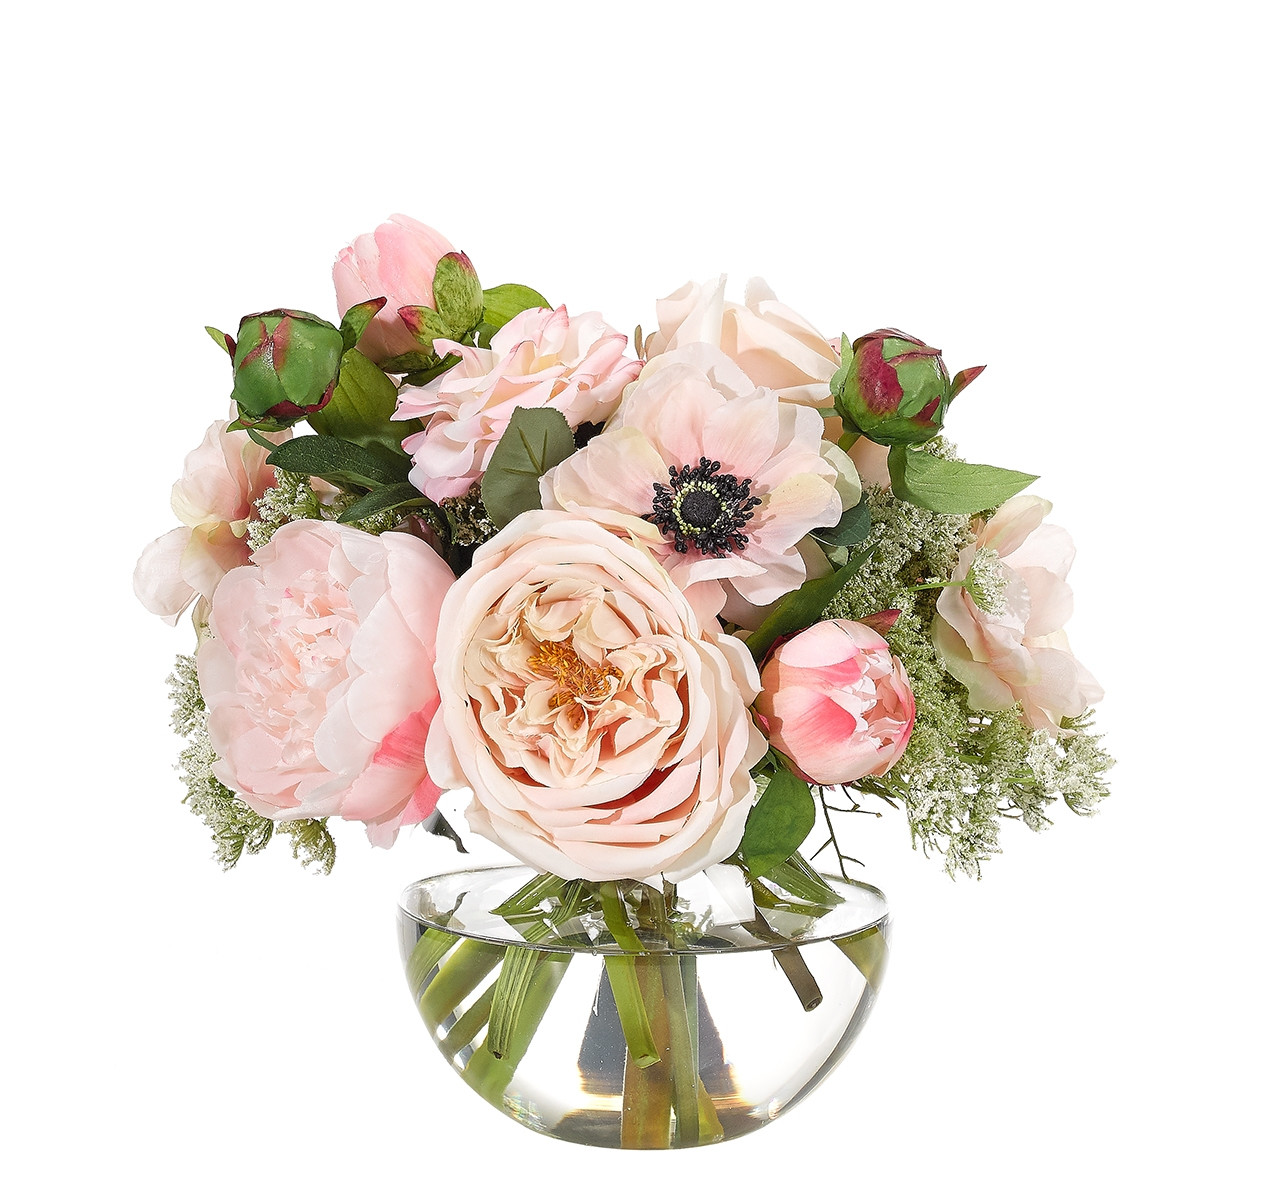 fake flowers in glass vase of ndi faux florals and botanicals with custom orders